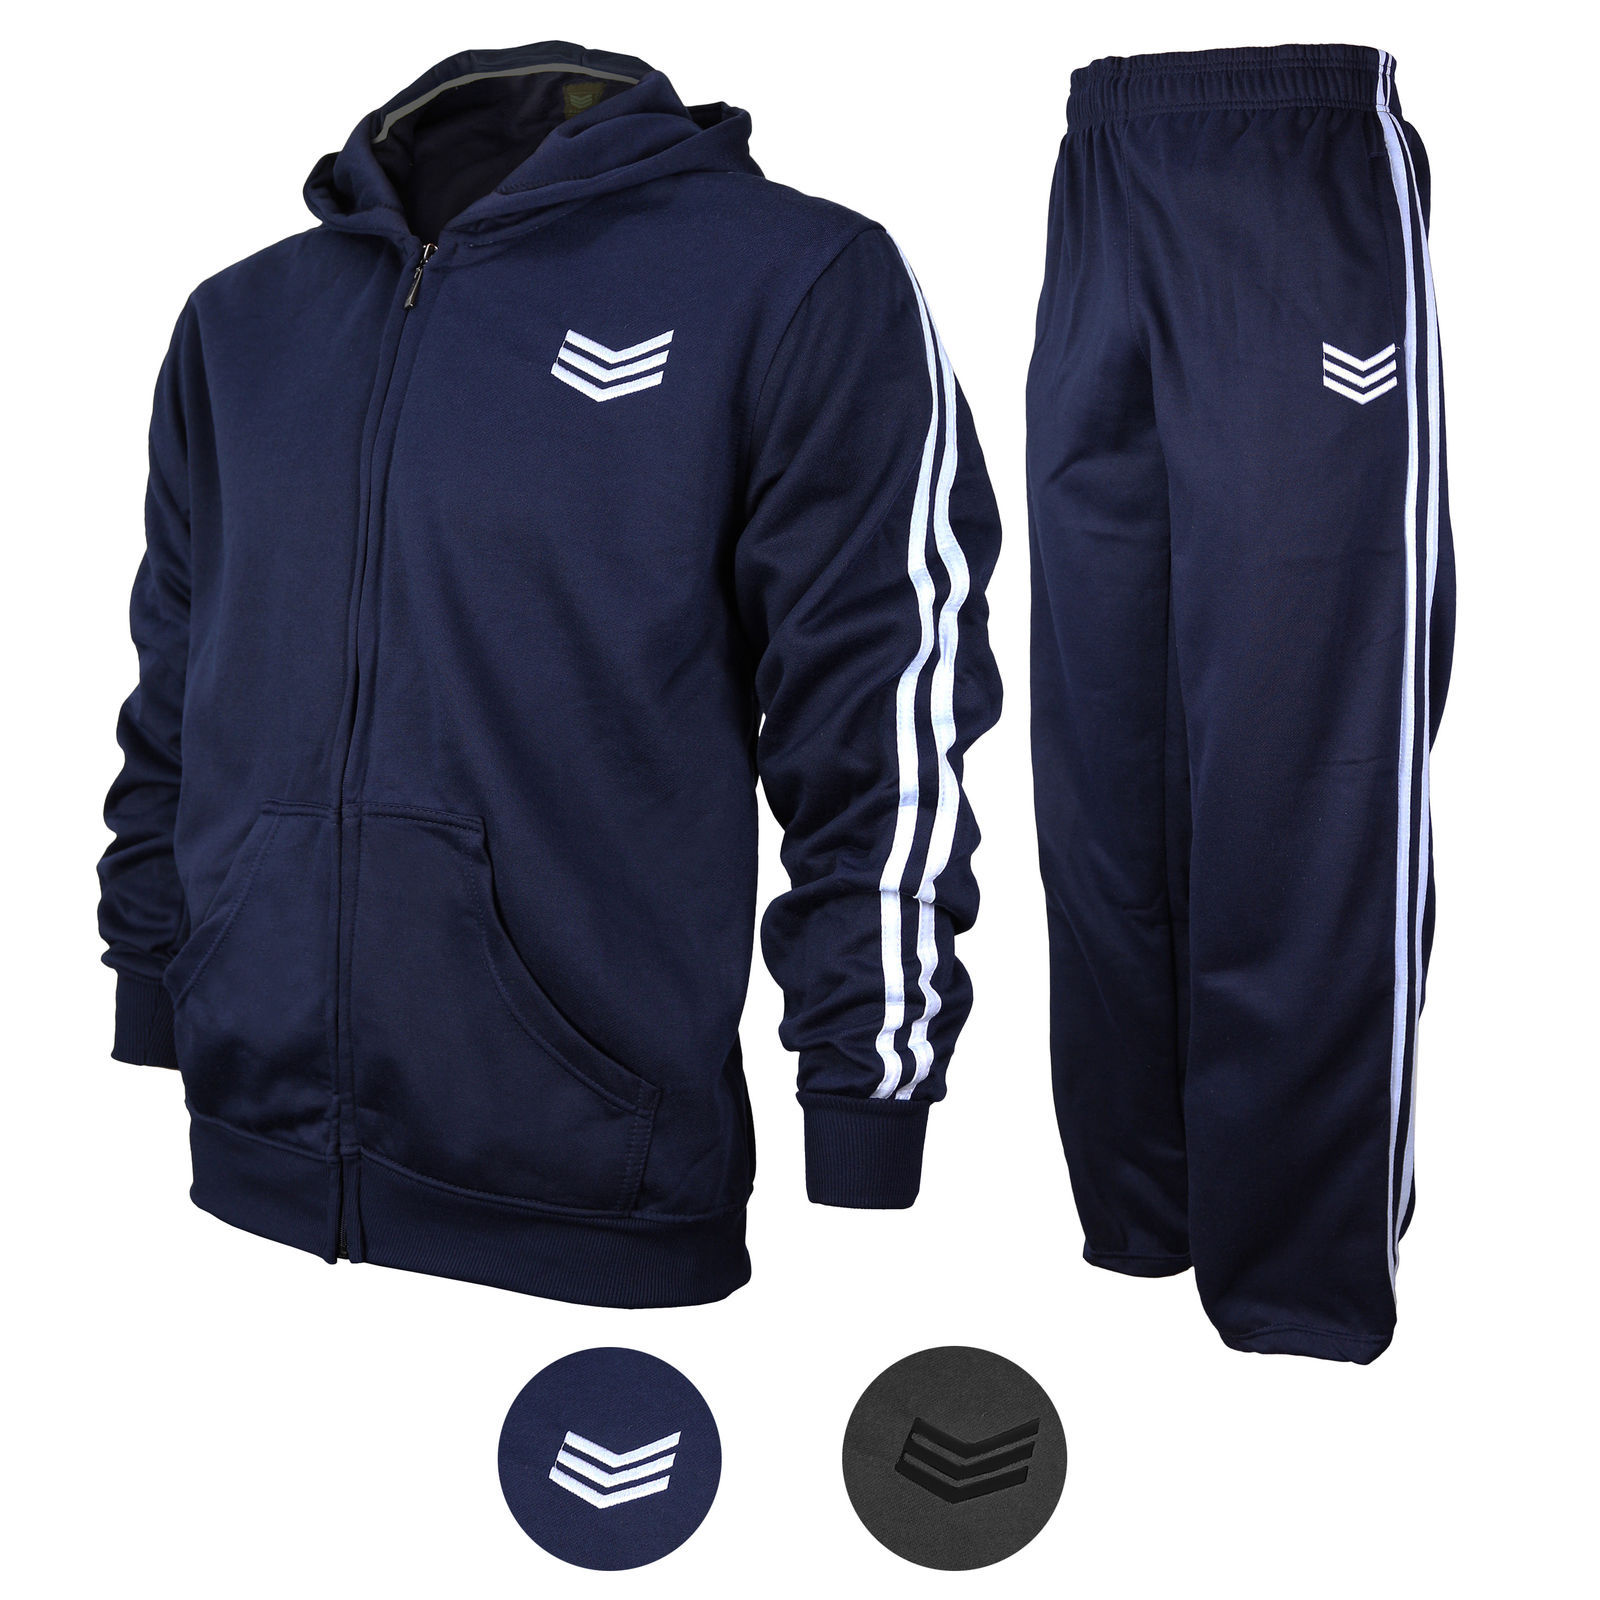 Range Men's Athletic Running Jogging Gym Zip Casual Hooded Sweat Track Suit Set